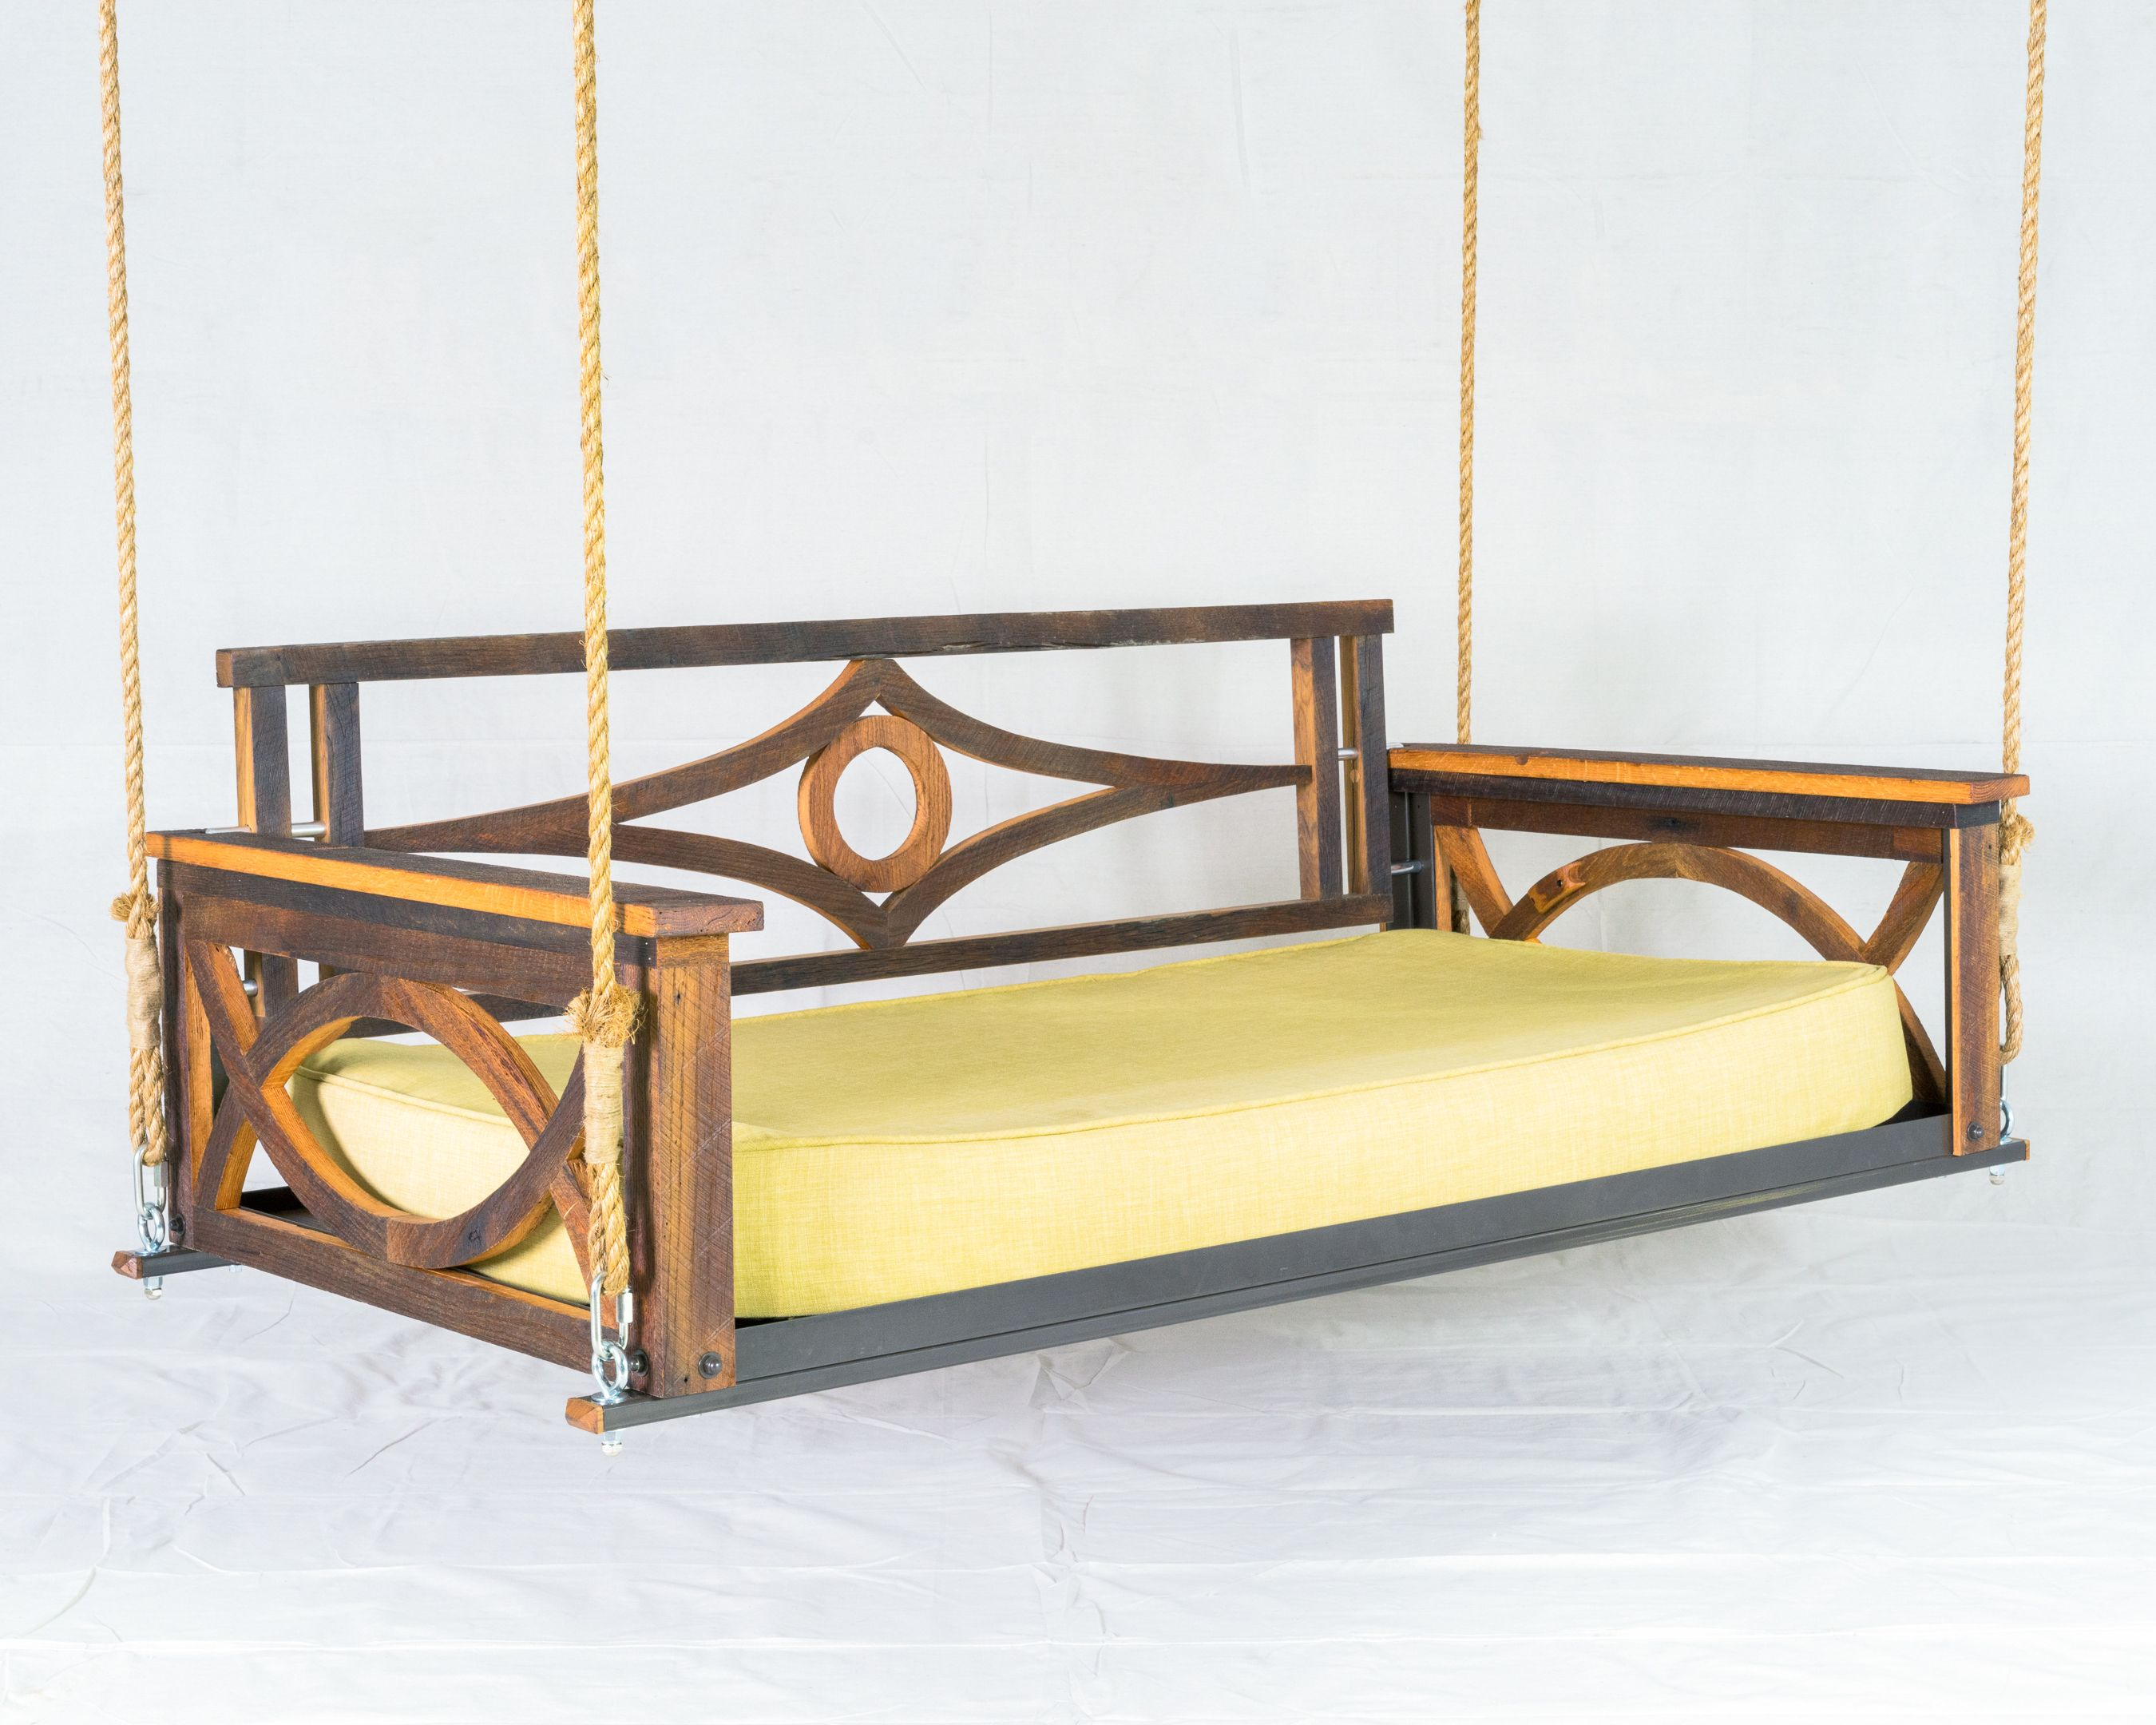 Barn Wood Bed Swing The Porch pany For the Home